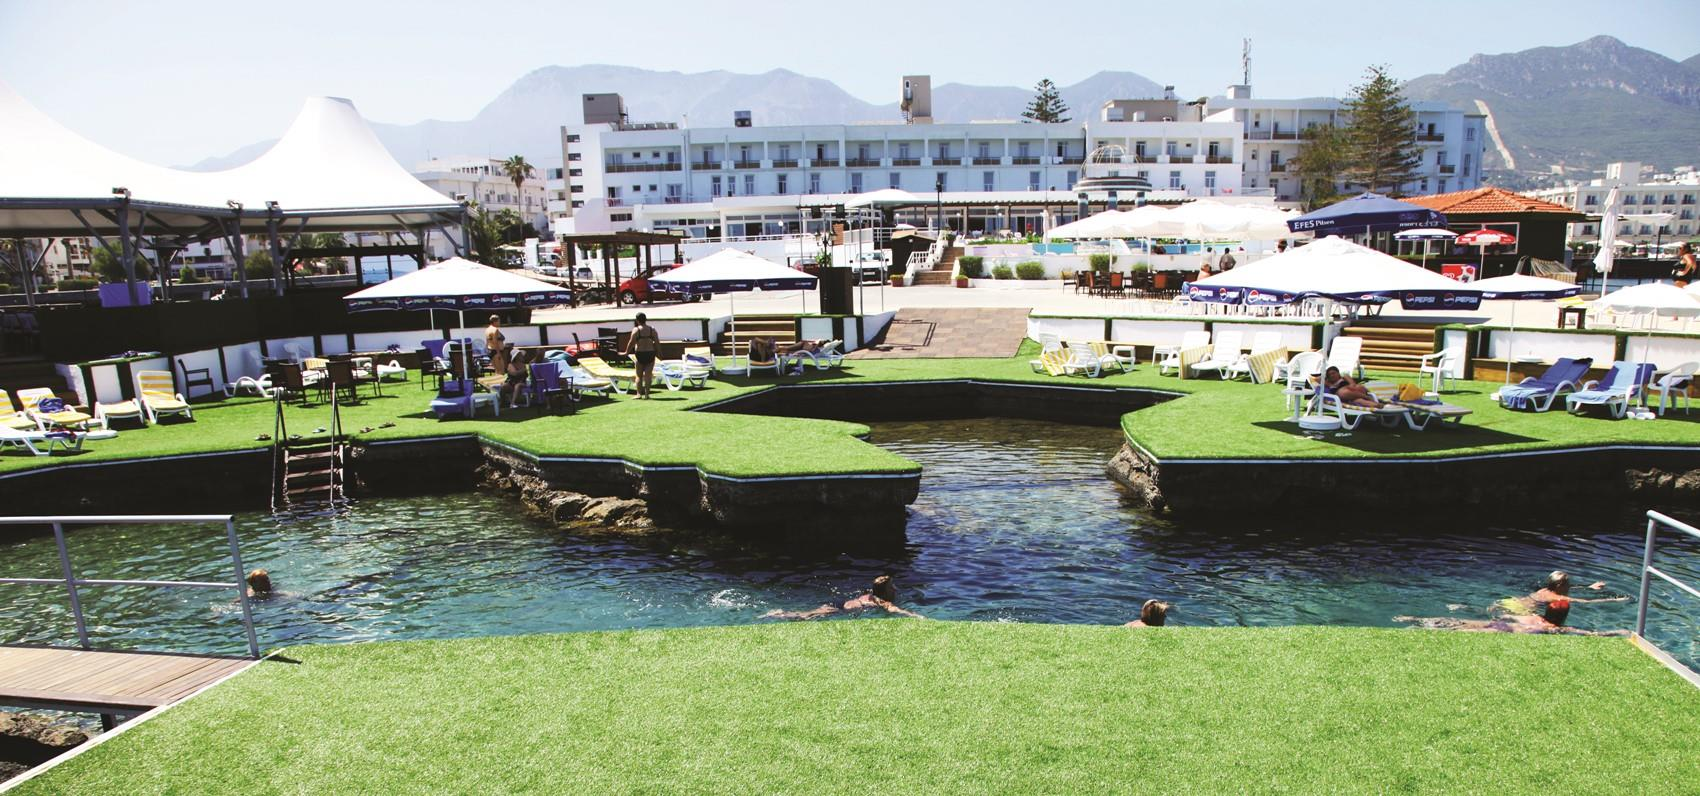 dome-hotel-and-casino-girne-genel-009